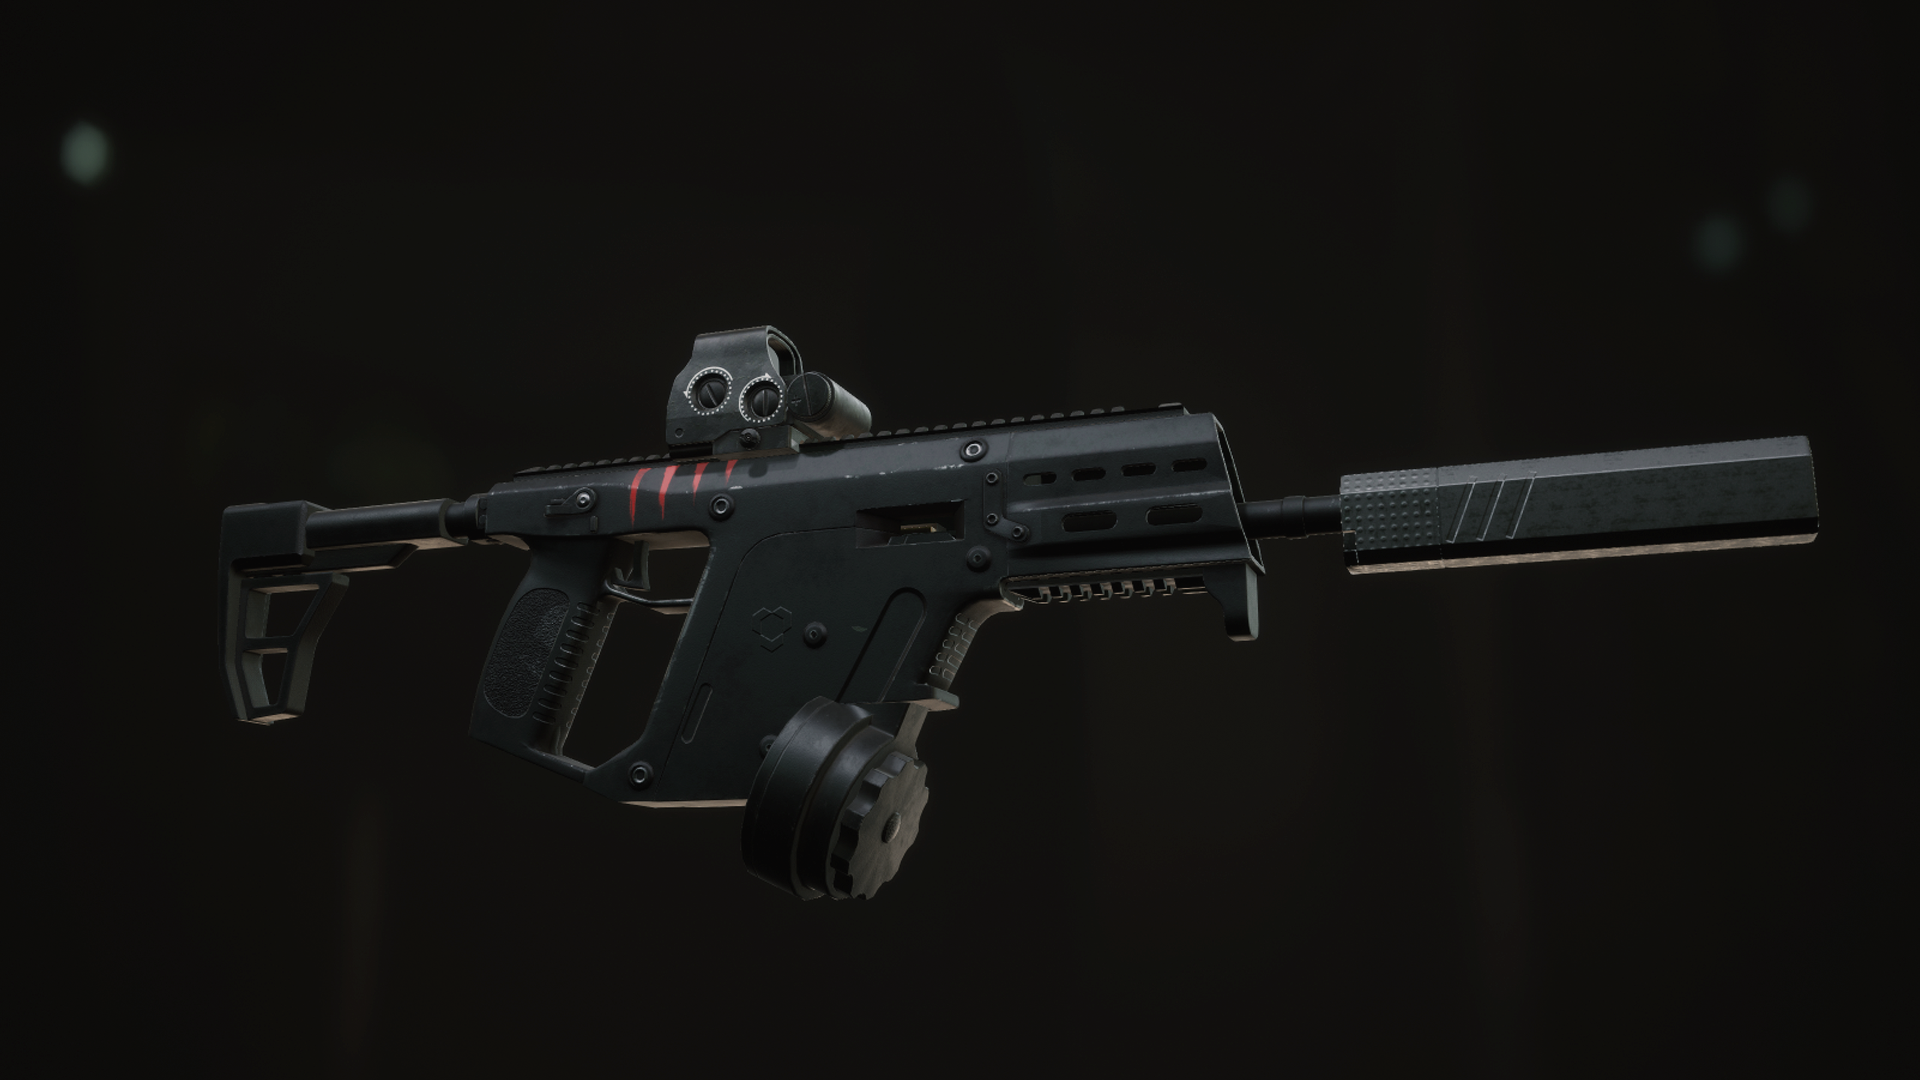 Customizable Weapon Pack by RedHawk in Weapons - UE4 Marketplace